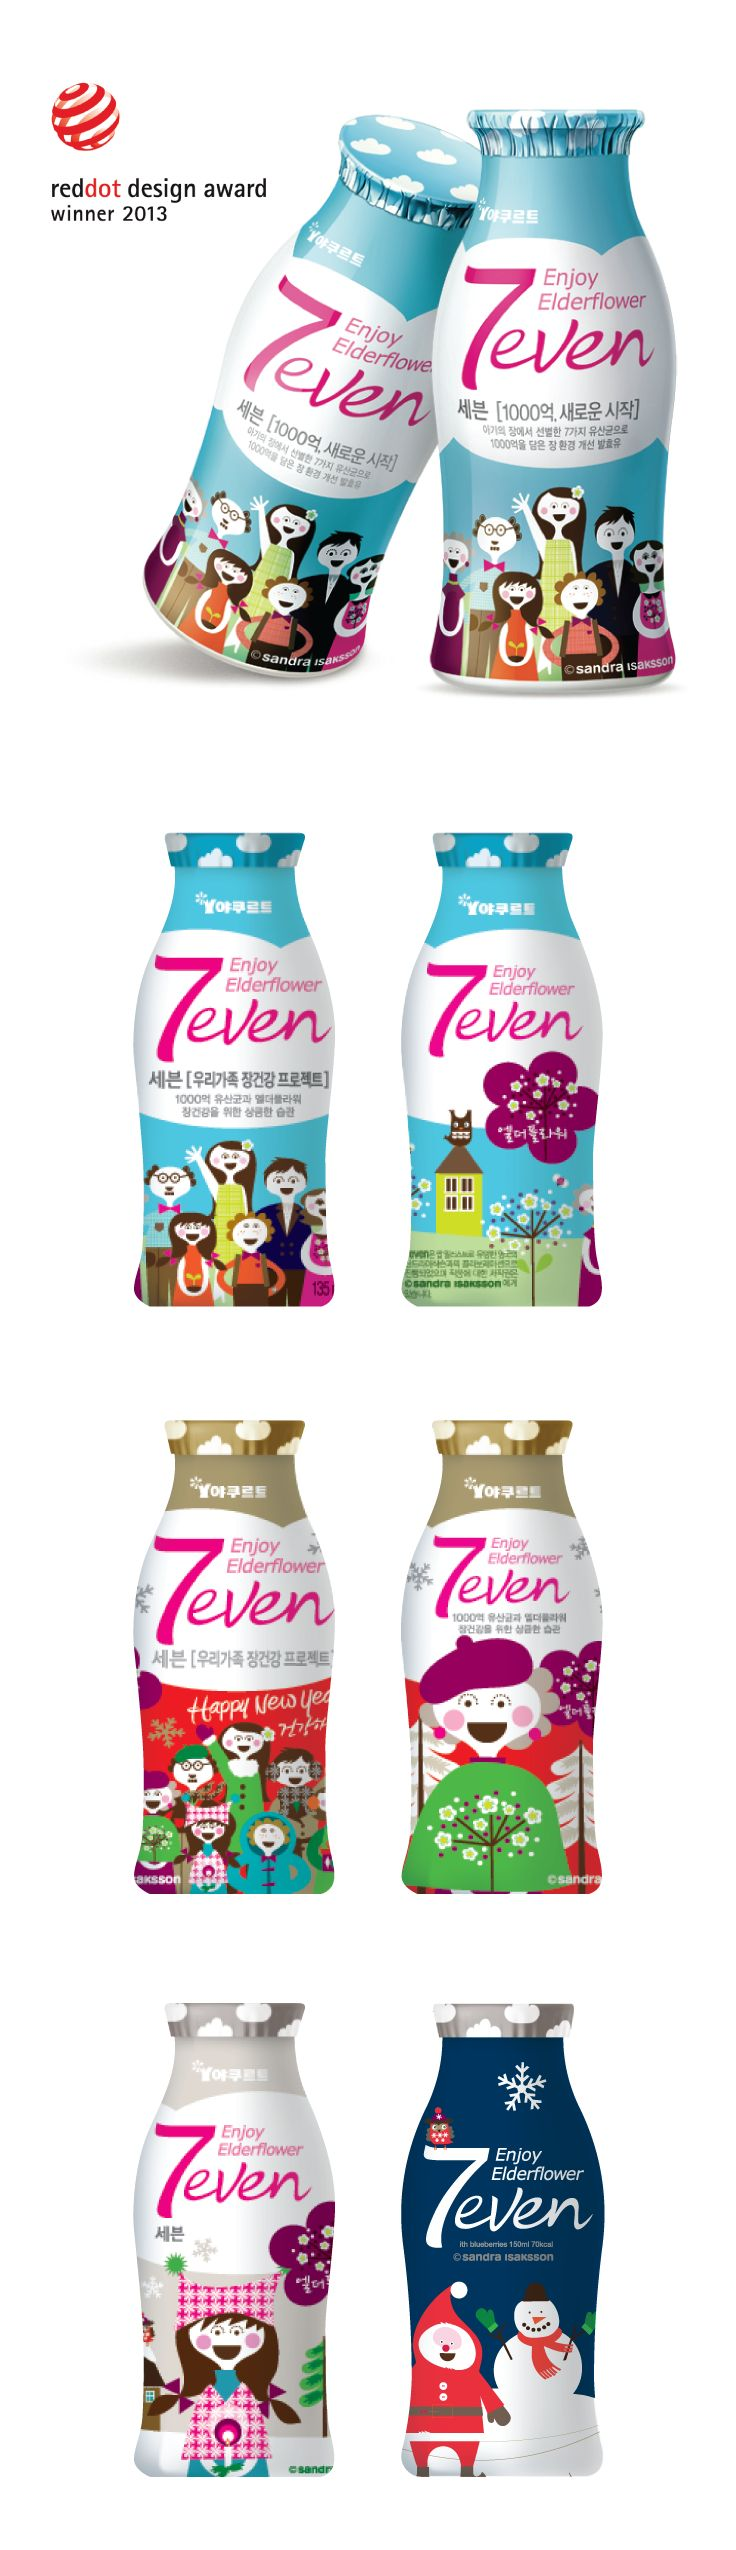 Our award winning project Yakult-7even, with a brand idea 'The Little Cheers'.7even achieved a big sales hit over 100 billion won in the first year of its launch, S.Korea.